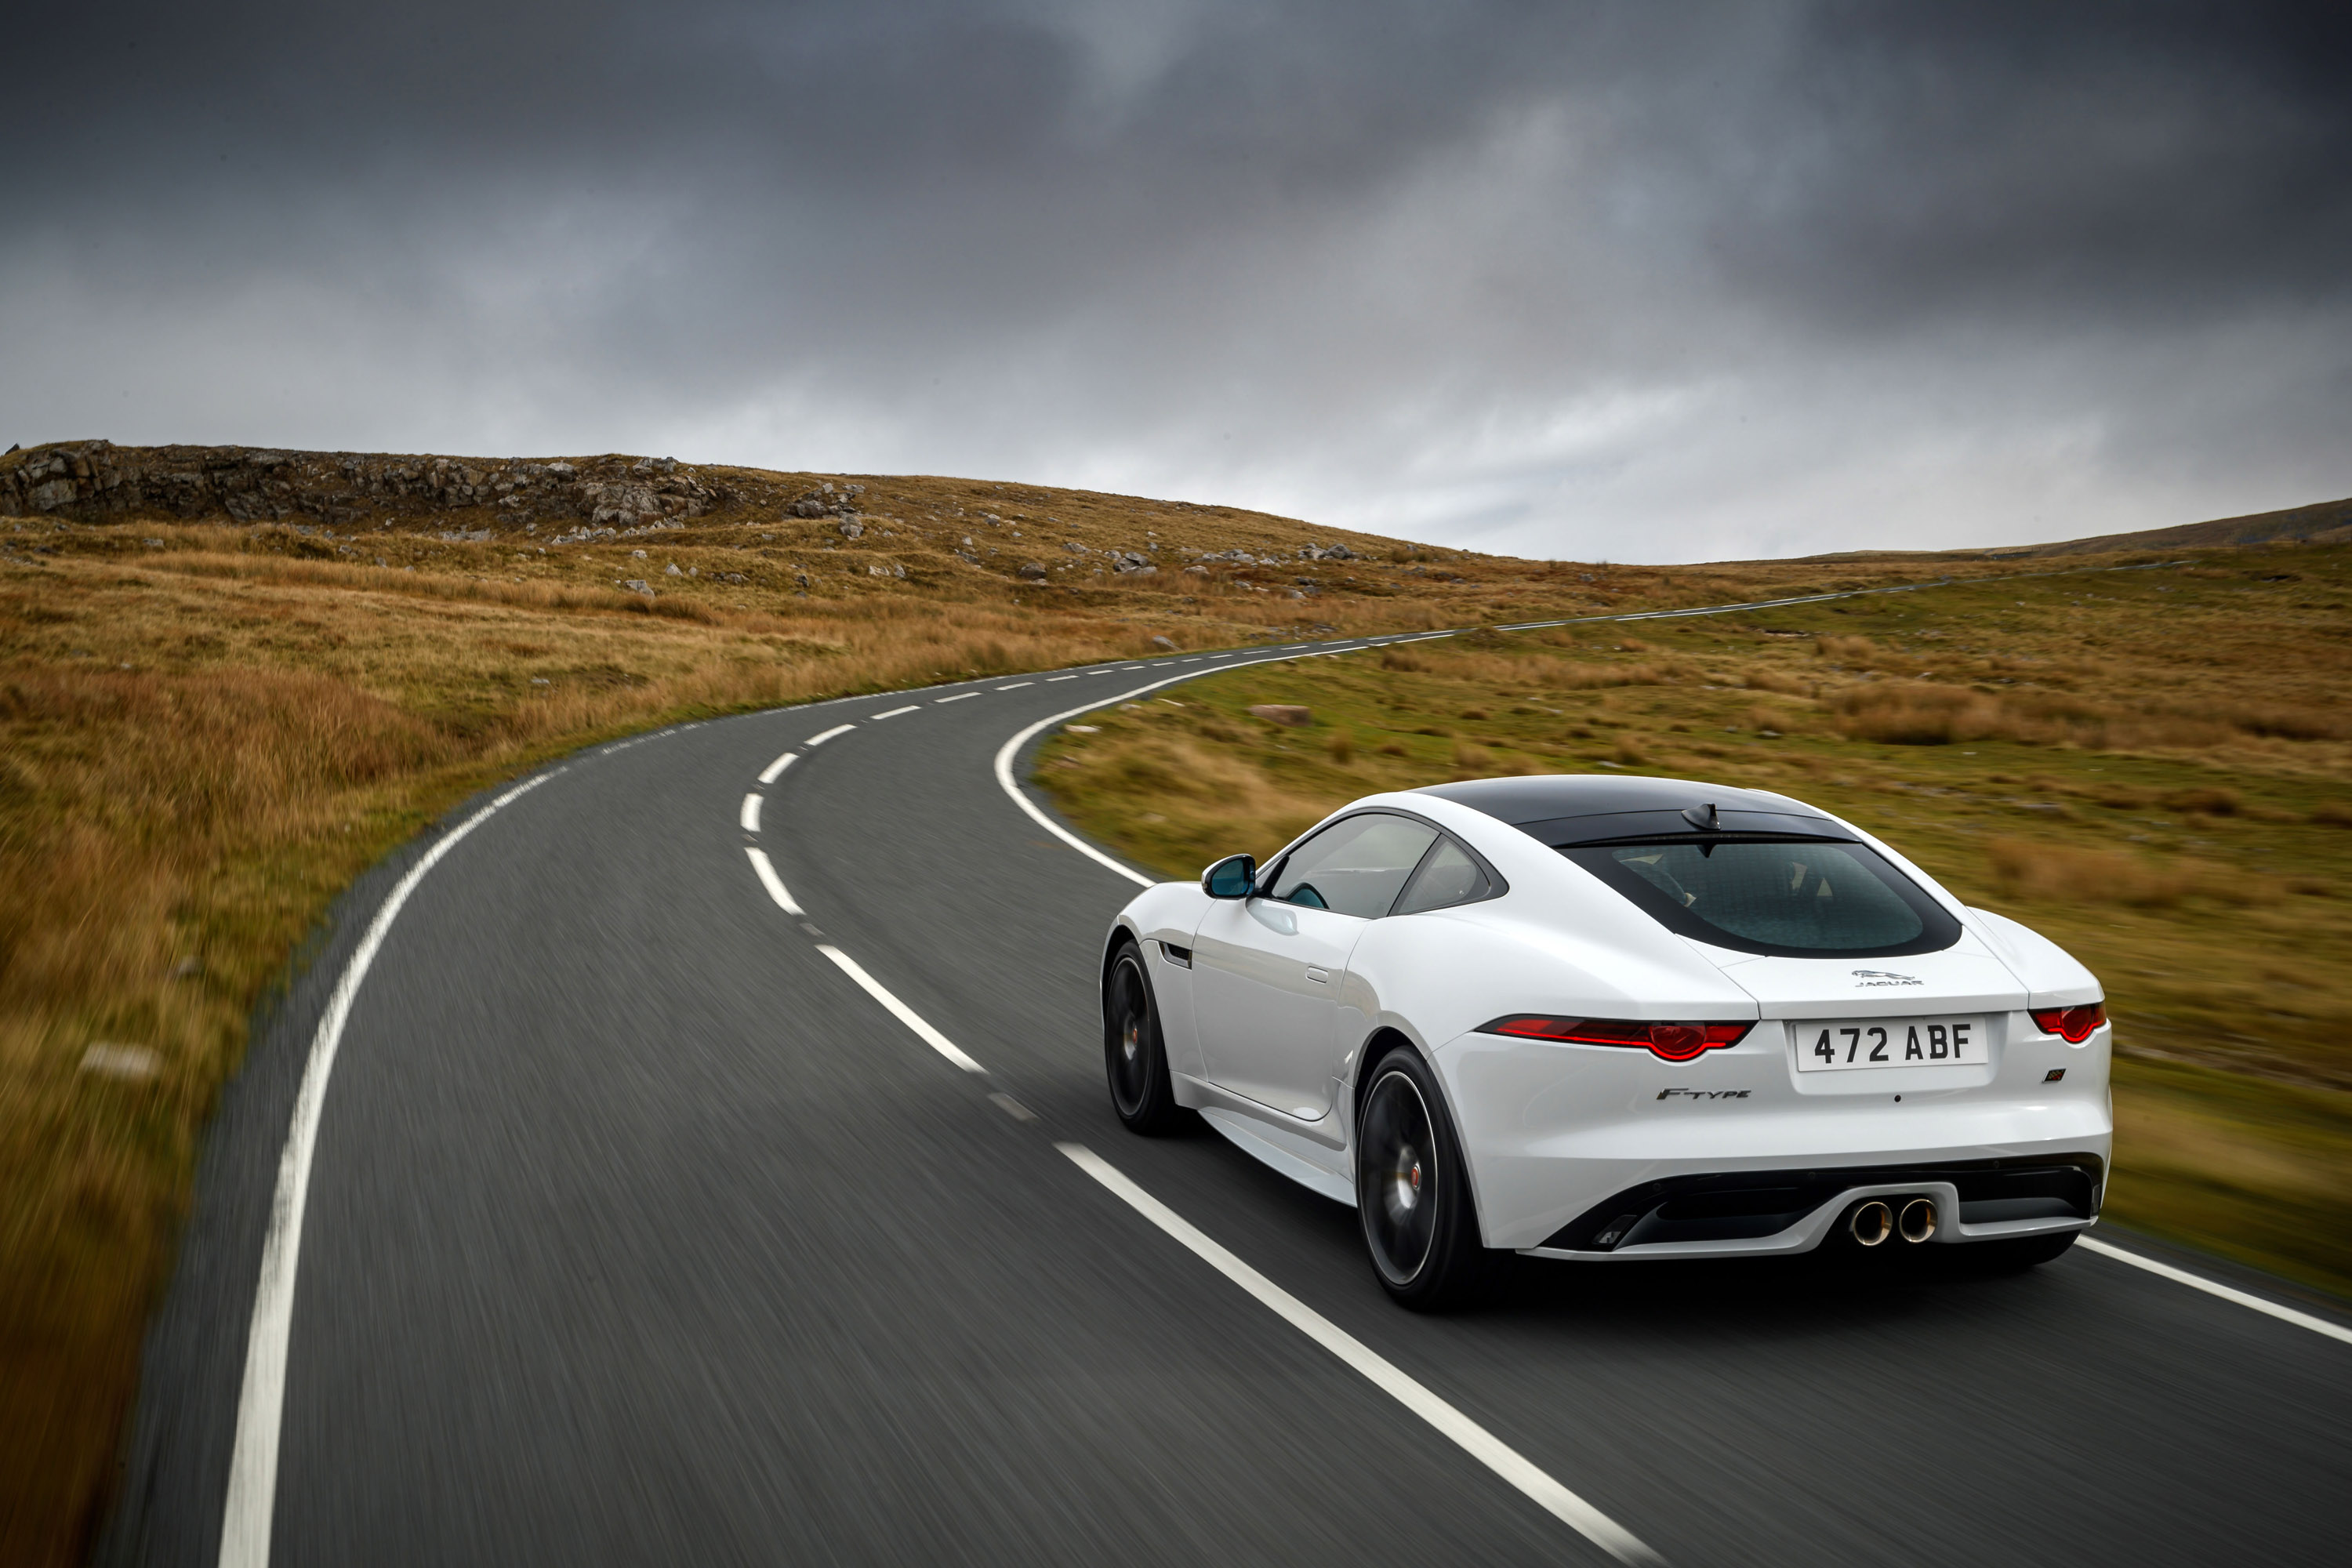 Jaguar Reveals F-TYPE Chequered Edition Vehicle